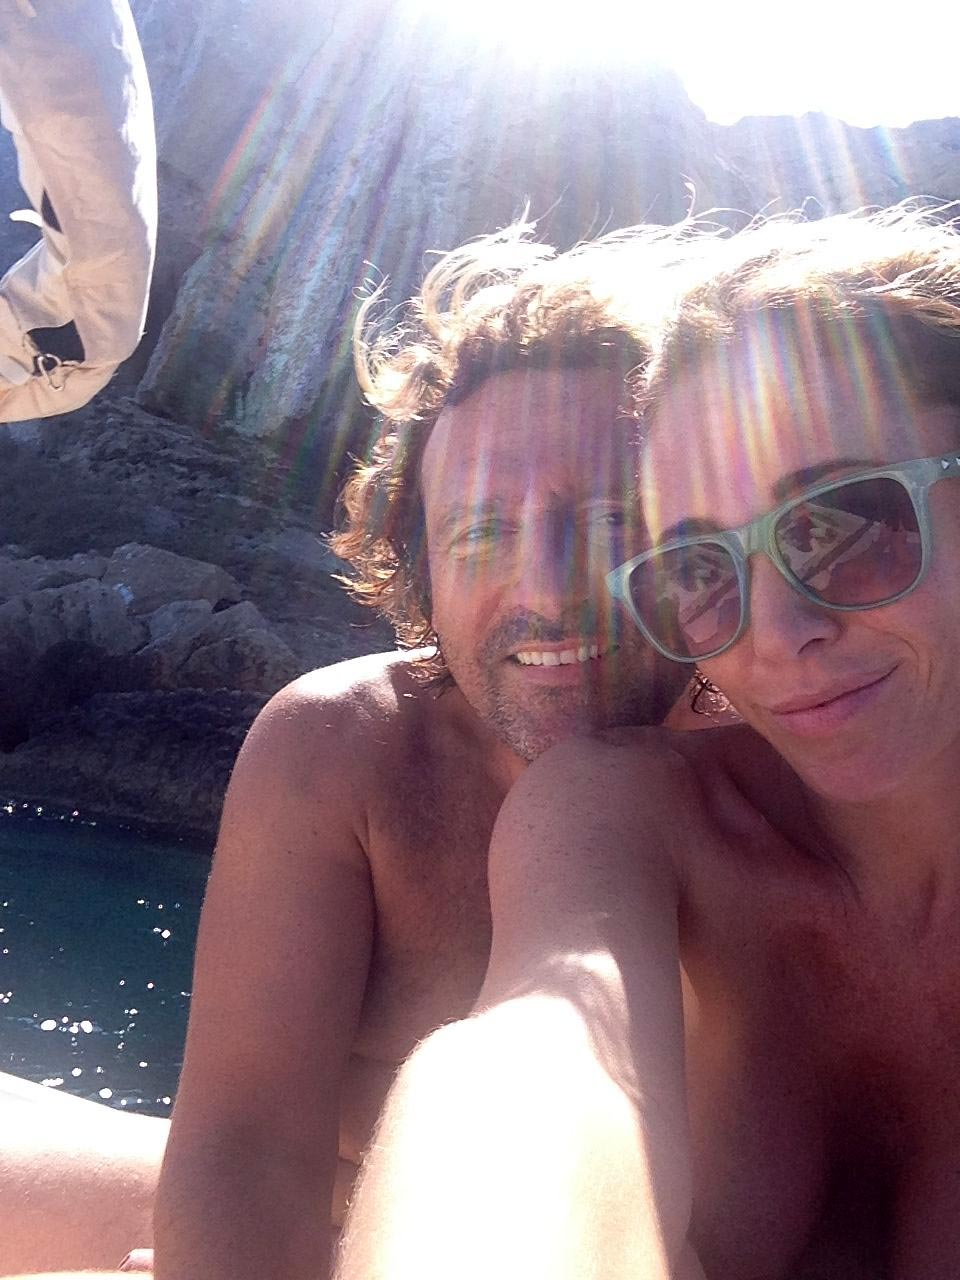 jenny frost nude leaked photos scandal planet